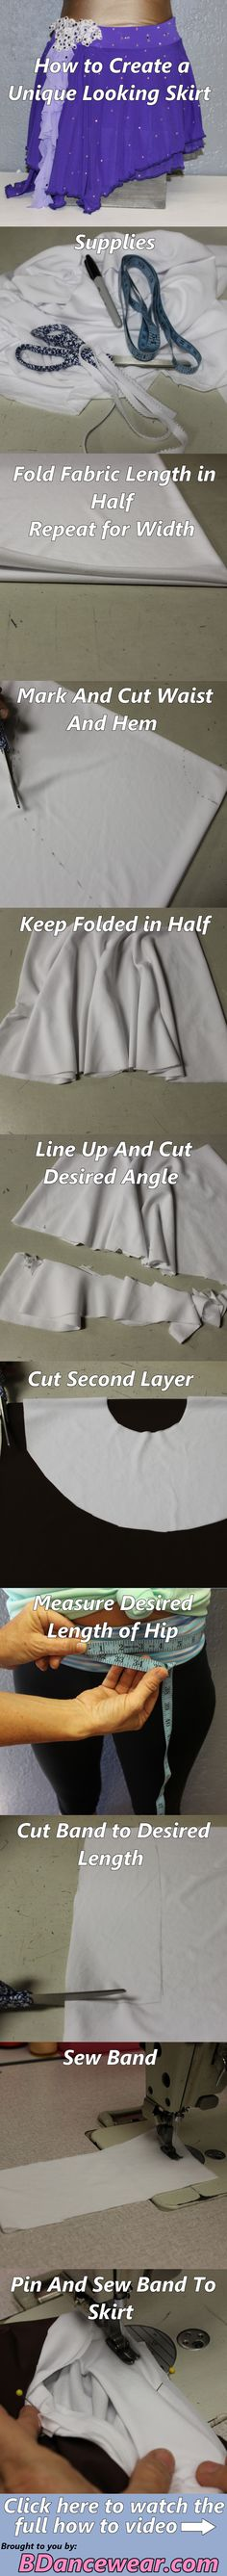 DIY Dance Costume How to Create a Unique Looking Skirt